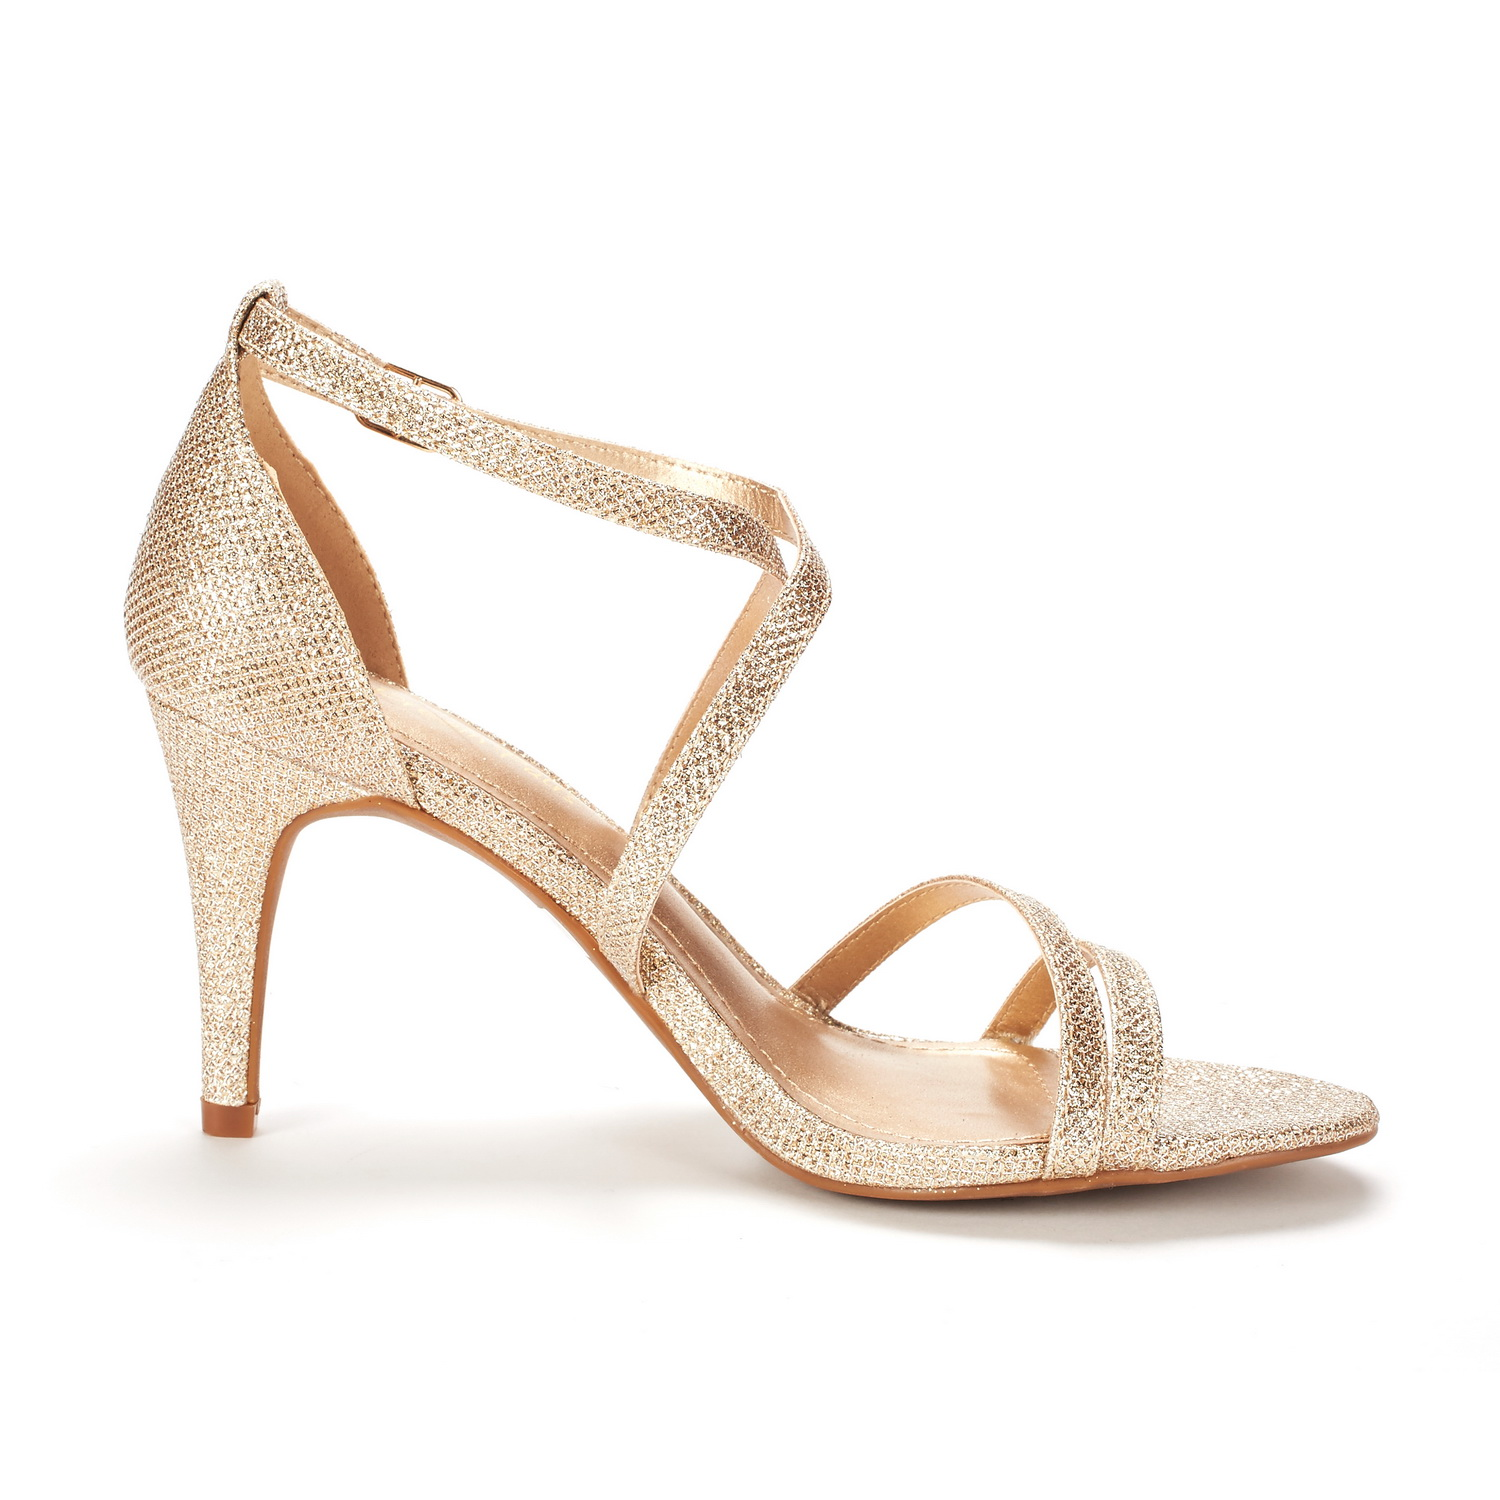 DREAM-PAIRS-Women-039-s-Ankle-Strap-High-Heel-Sandals-Dress-Shoes-Wedding-Party thumbnail 32